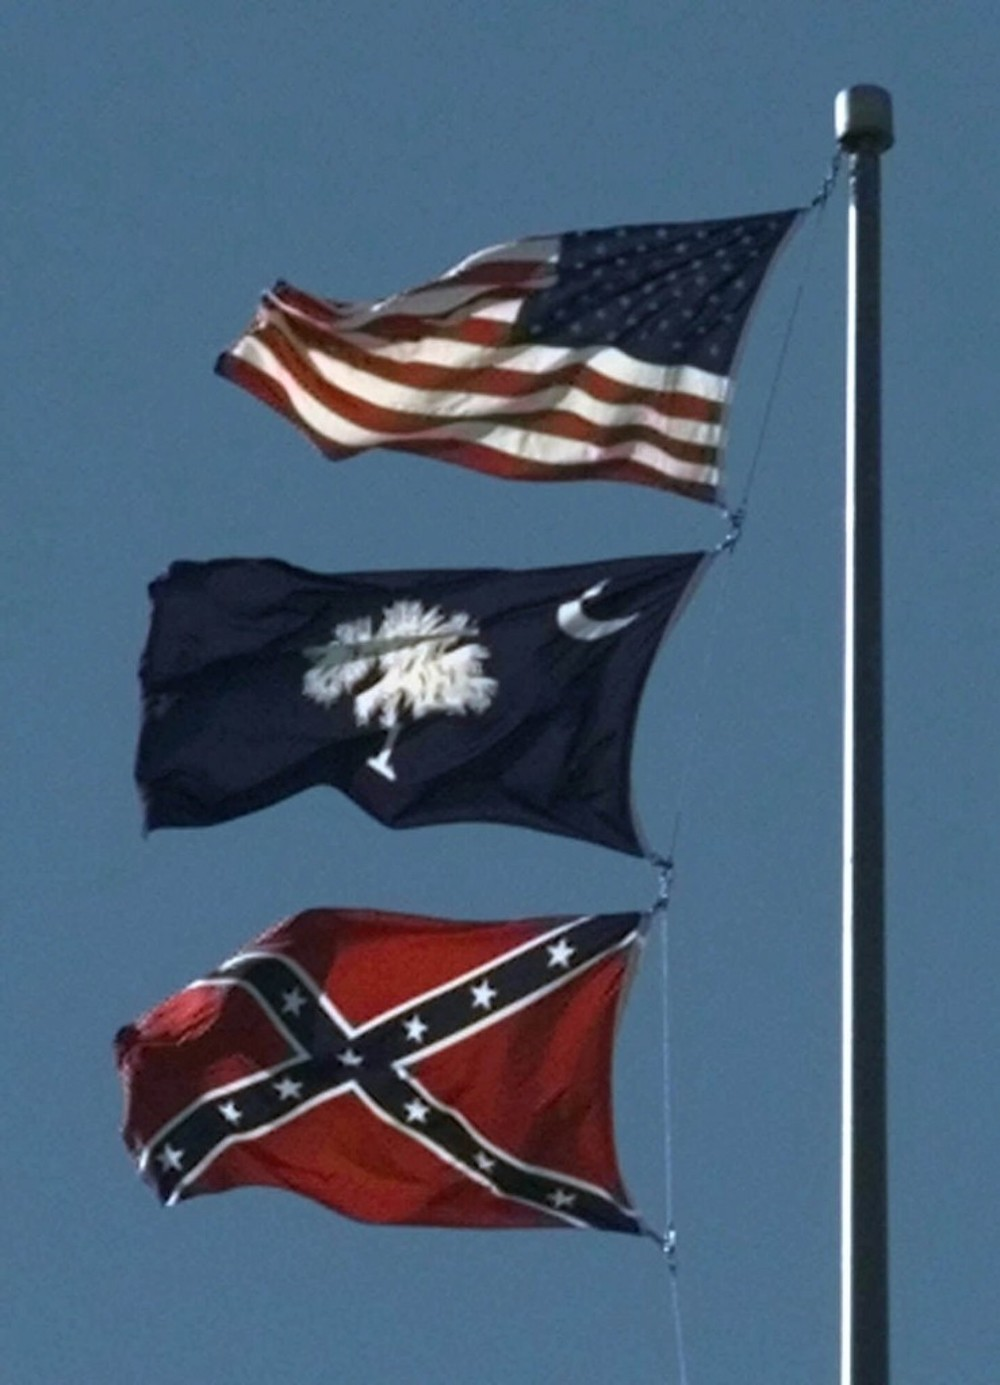 "The Confederacy was disbanded over 100 years ago when it lost ""The War of Northern Aggression"" as some southerners still like to call it.  So if the Confederacy was disbanded, so should the flag be.  This is the United States of America."